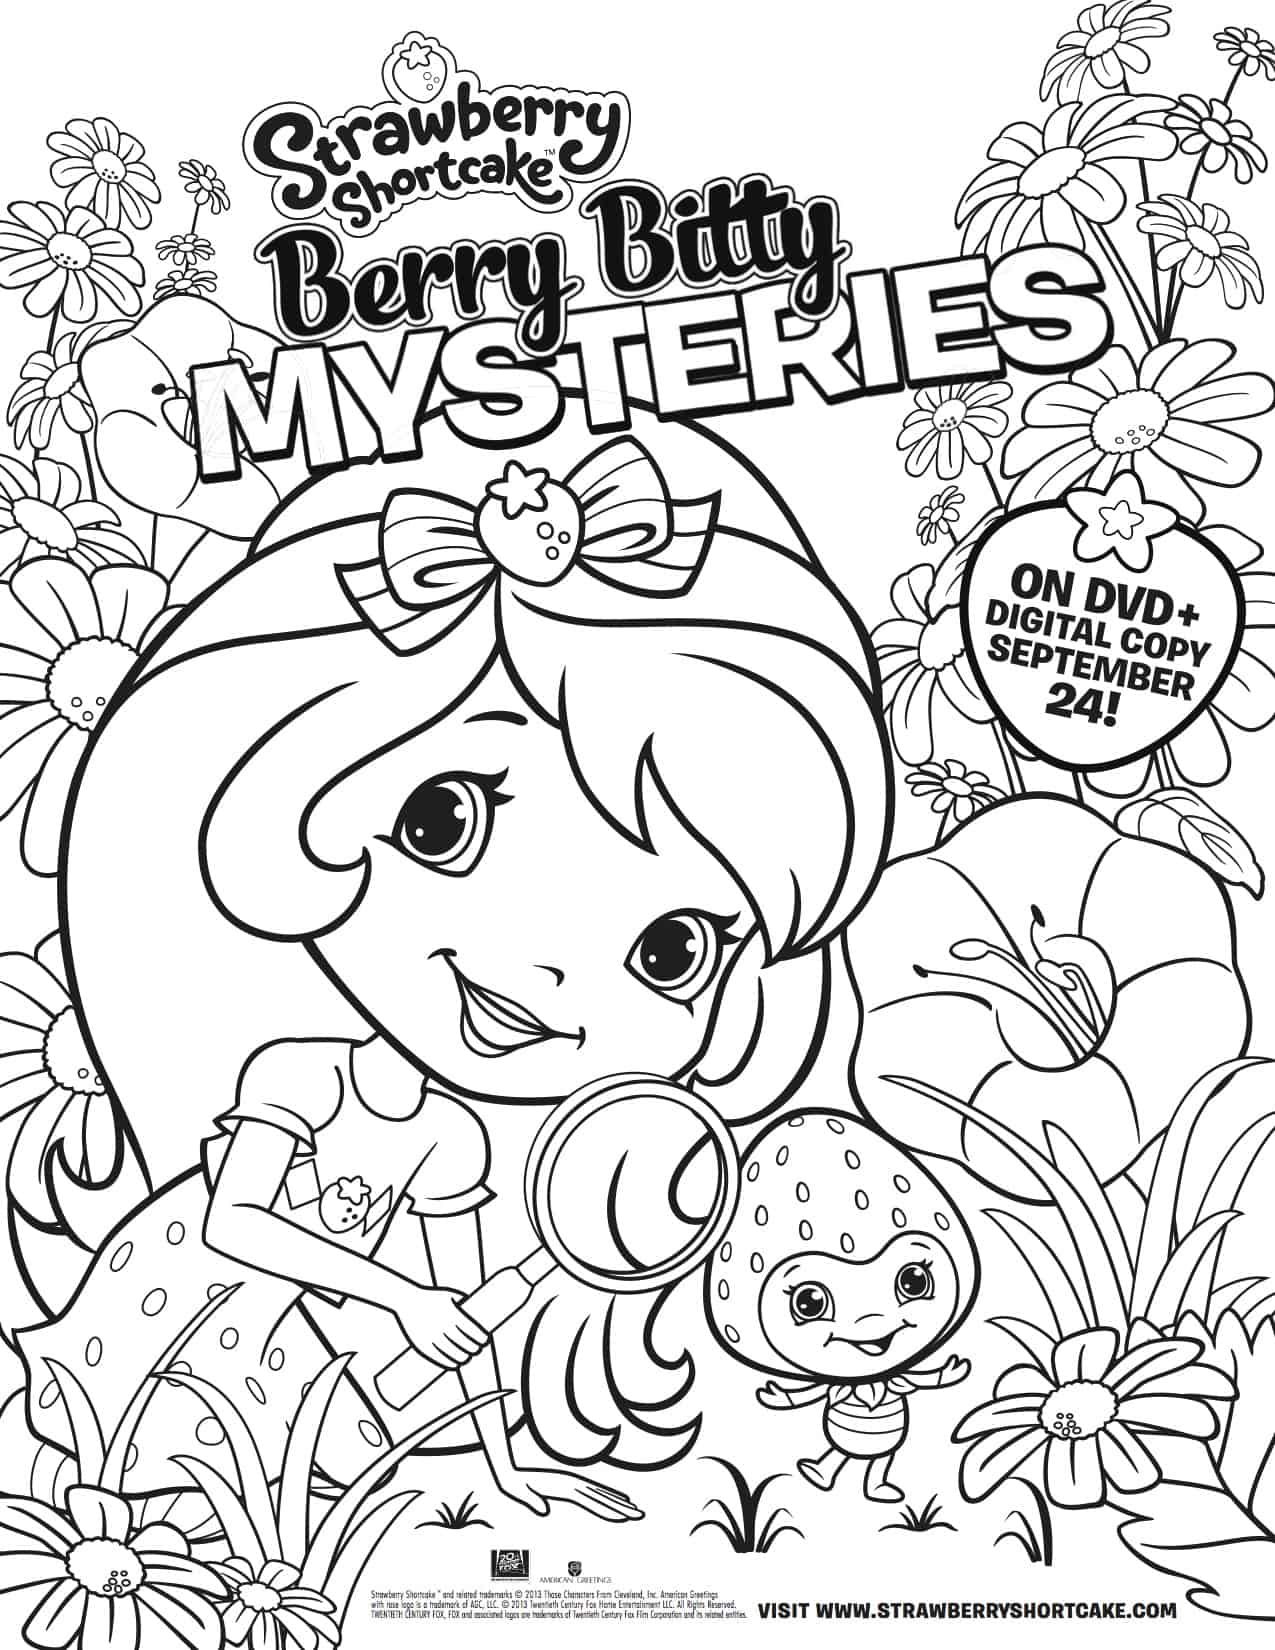 Strawberry Shortcake And Friends Coloring Pages - GetColoringPages.com | 1650x1275